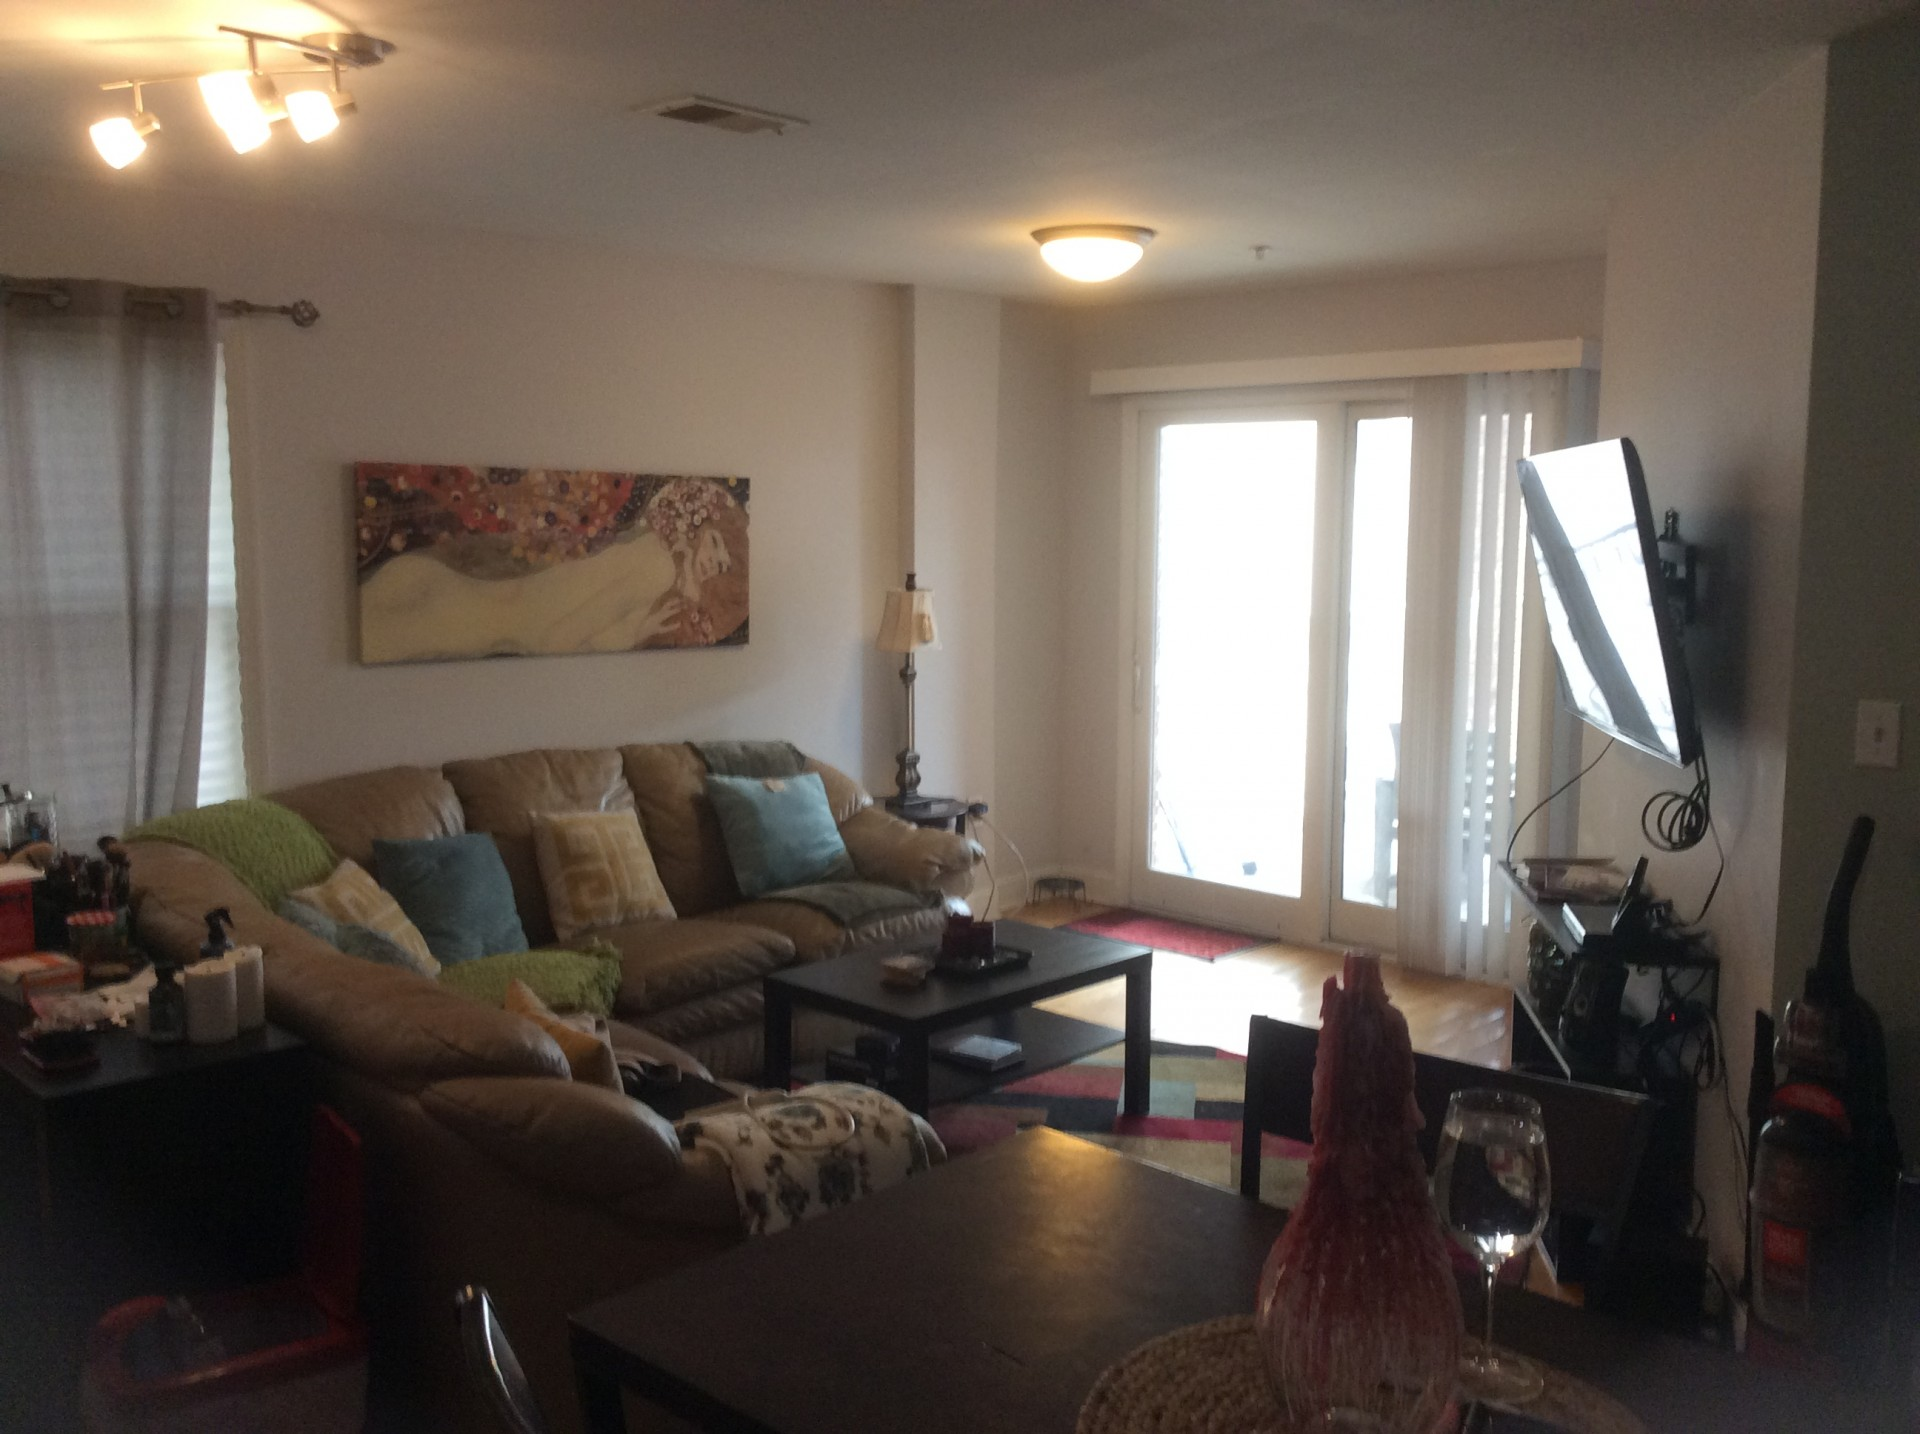 Marvelous $245K U2013 UNION CITY, NJ 2 BEDROOM CONDO W/ 2 PARKING SPACES U2013 10 MINUTES TO  NYC! CONTRACT SALE!